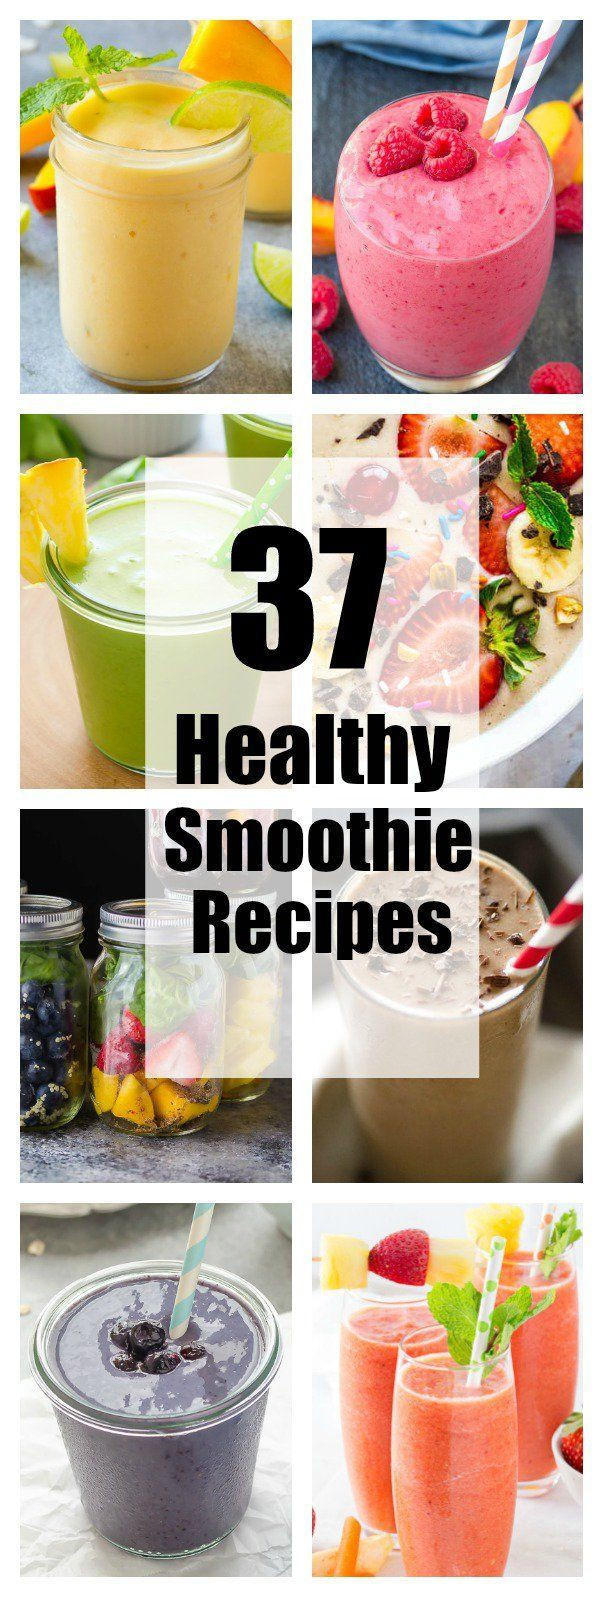 Weight Loss Smoothies For Diabetics  100 Diabetic Smoothie Recipes on Pinterest